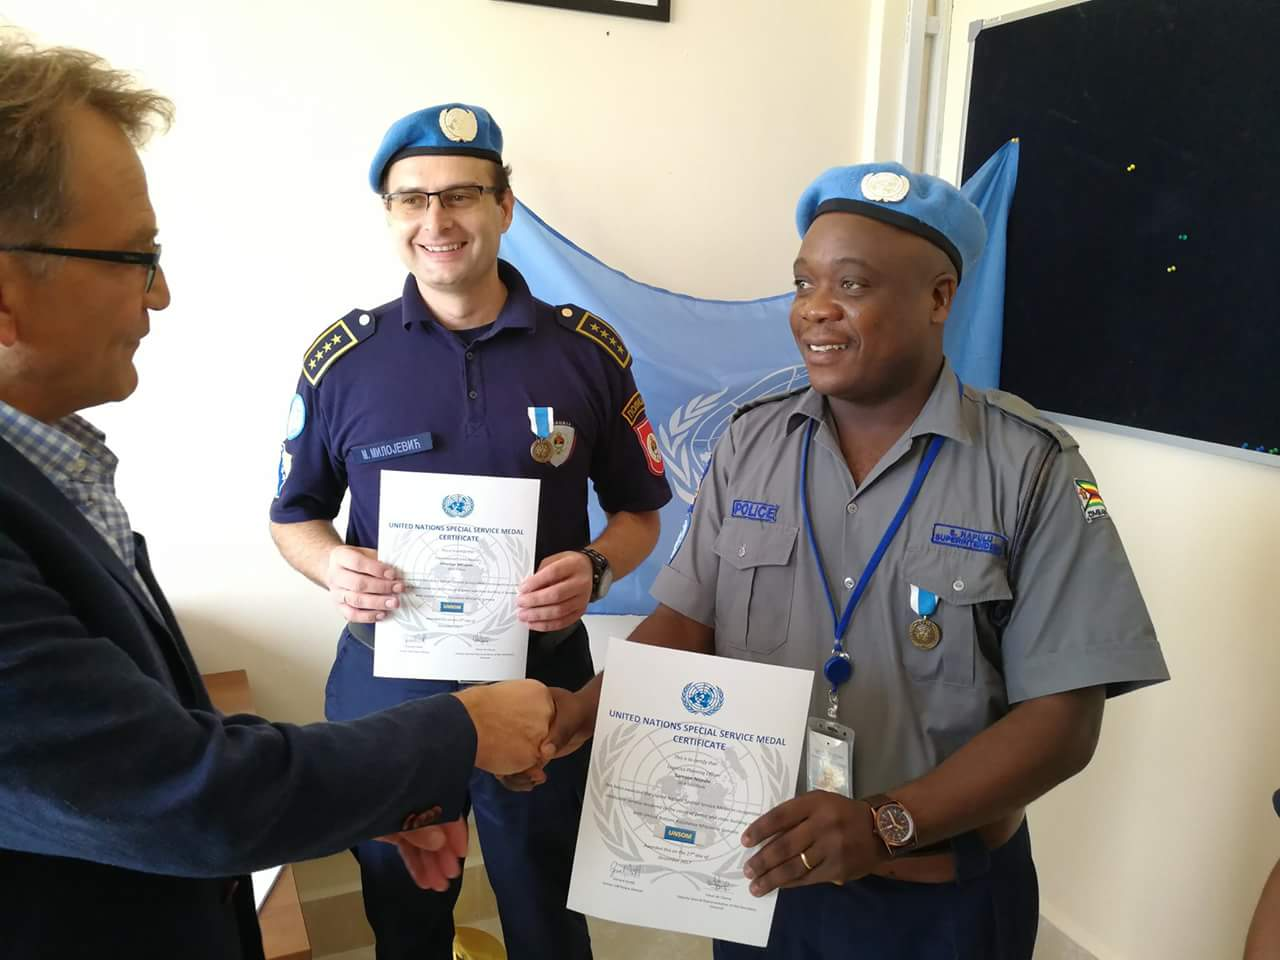 UN HONOURS ANOTHER ZIM POLICE OFFICER